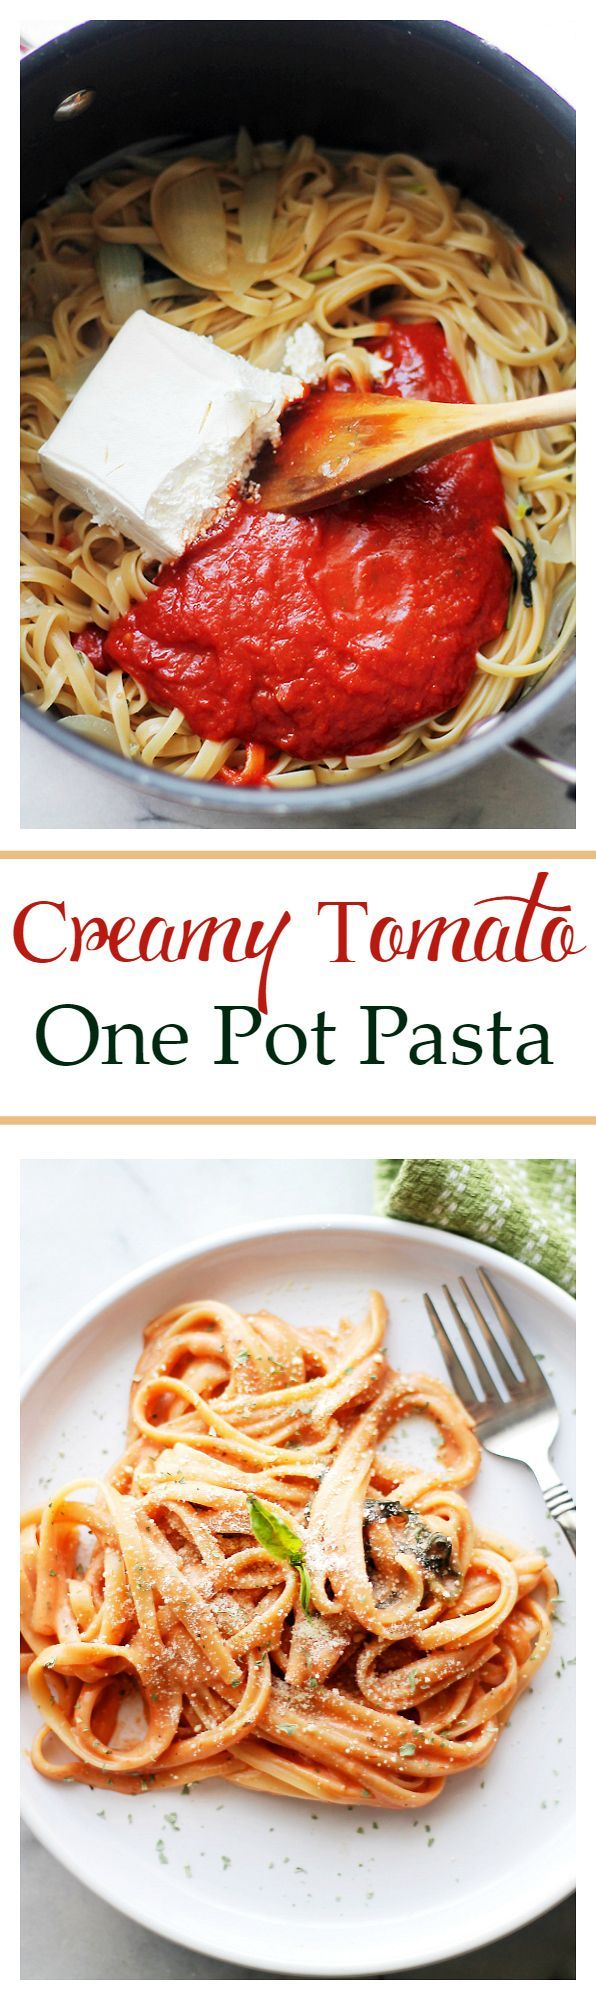 Creamy Tomato One Pot Pasta - The easiest and creamiest pasta without the cream! It all happens in the same pot and it will be on your dinner table in just 20 minutes! Get the recipe on diethood.com